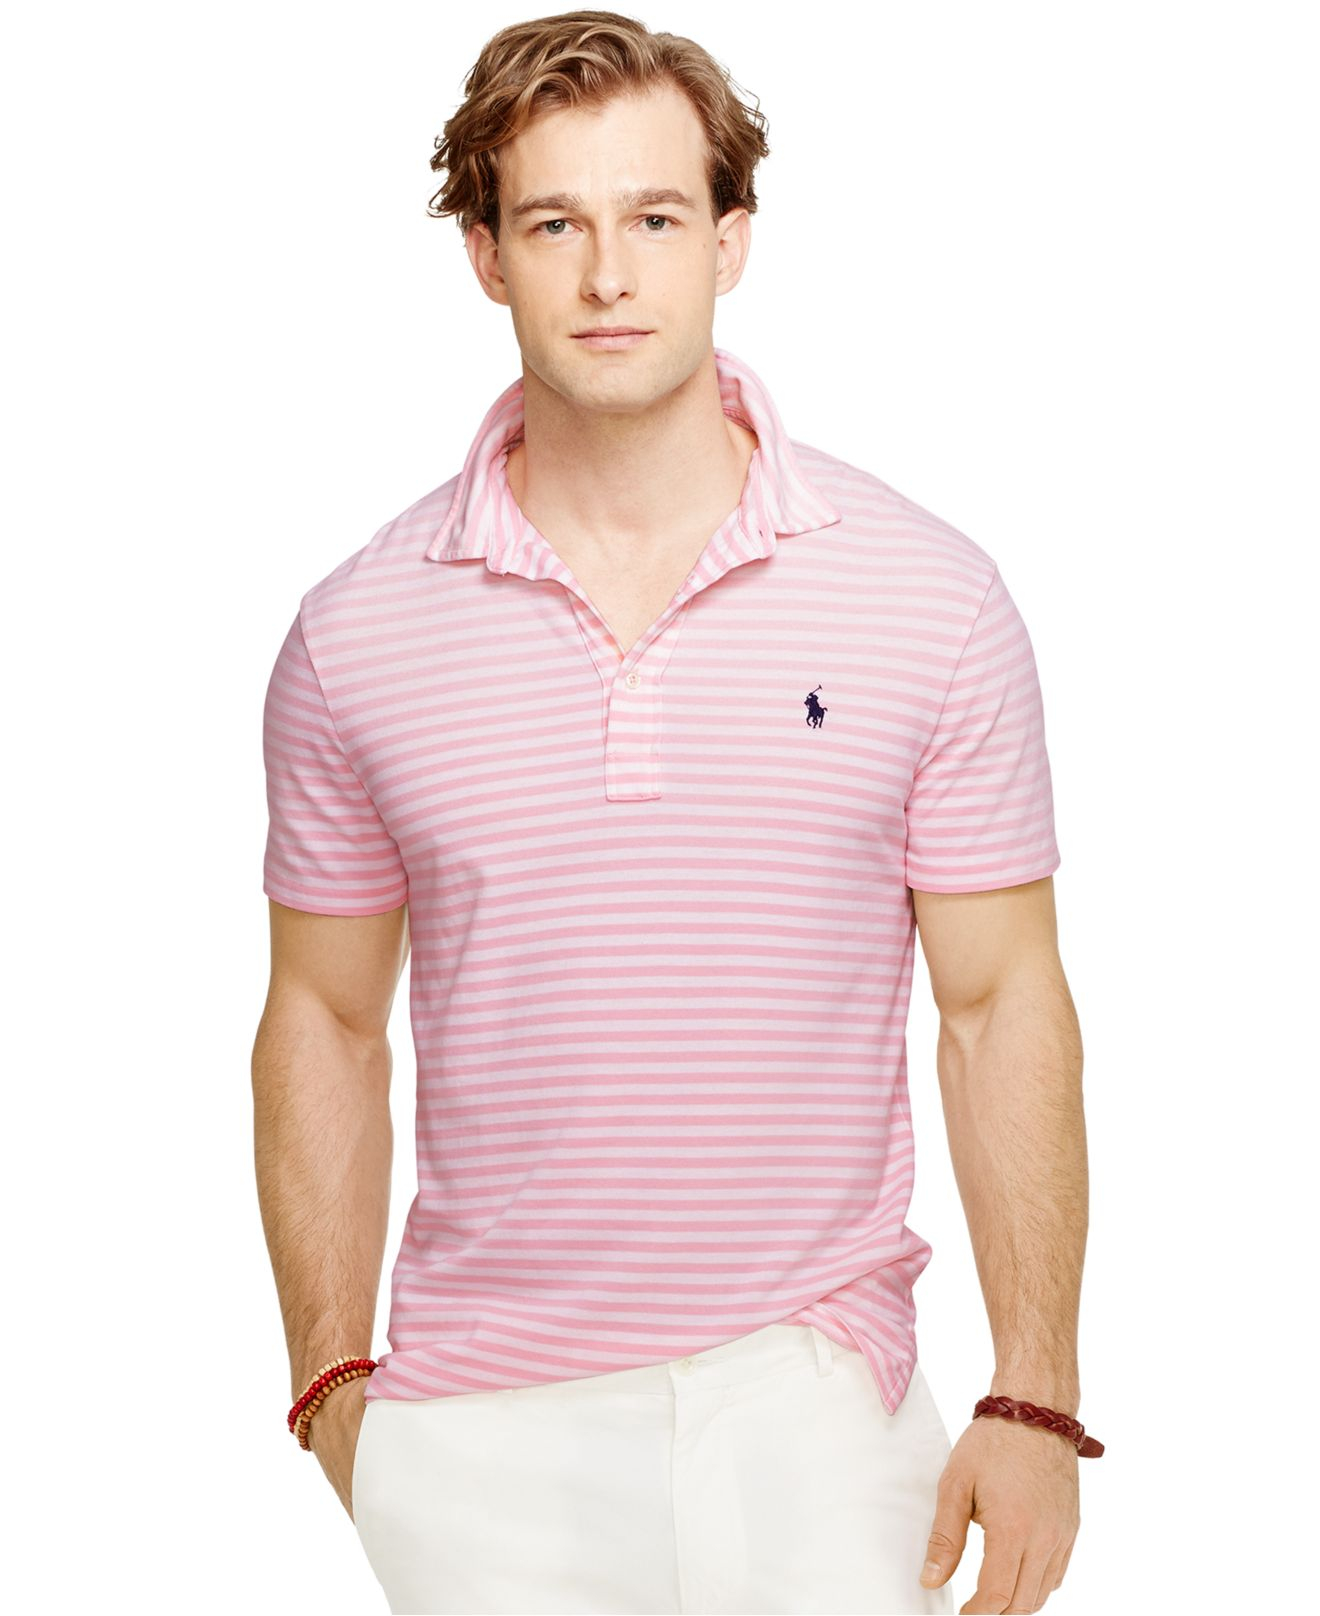 Enjoy free shipping and easy returns every day at Kohl's. Find great deals on Mens Pink Polos Tops at Kohl's today!